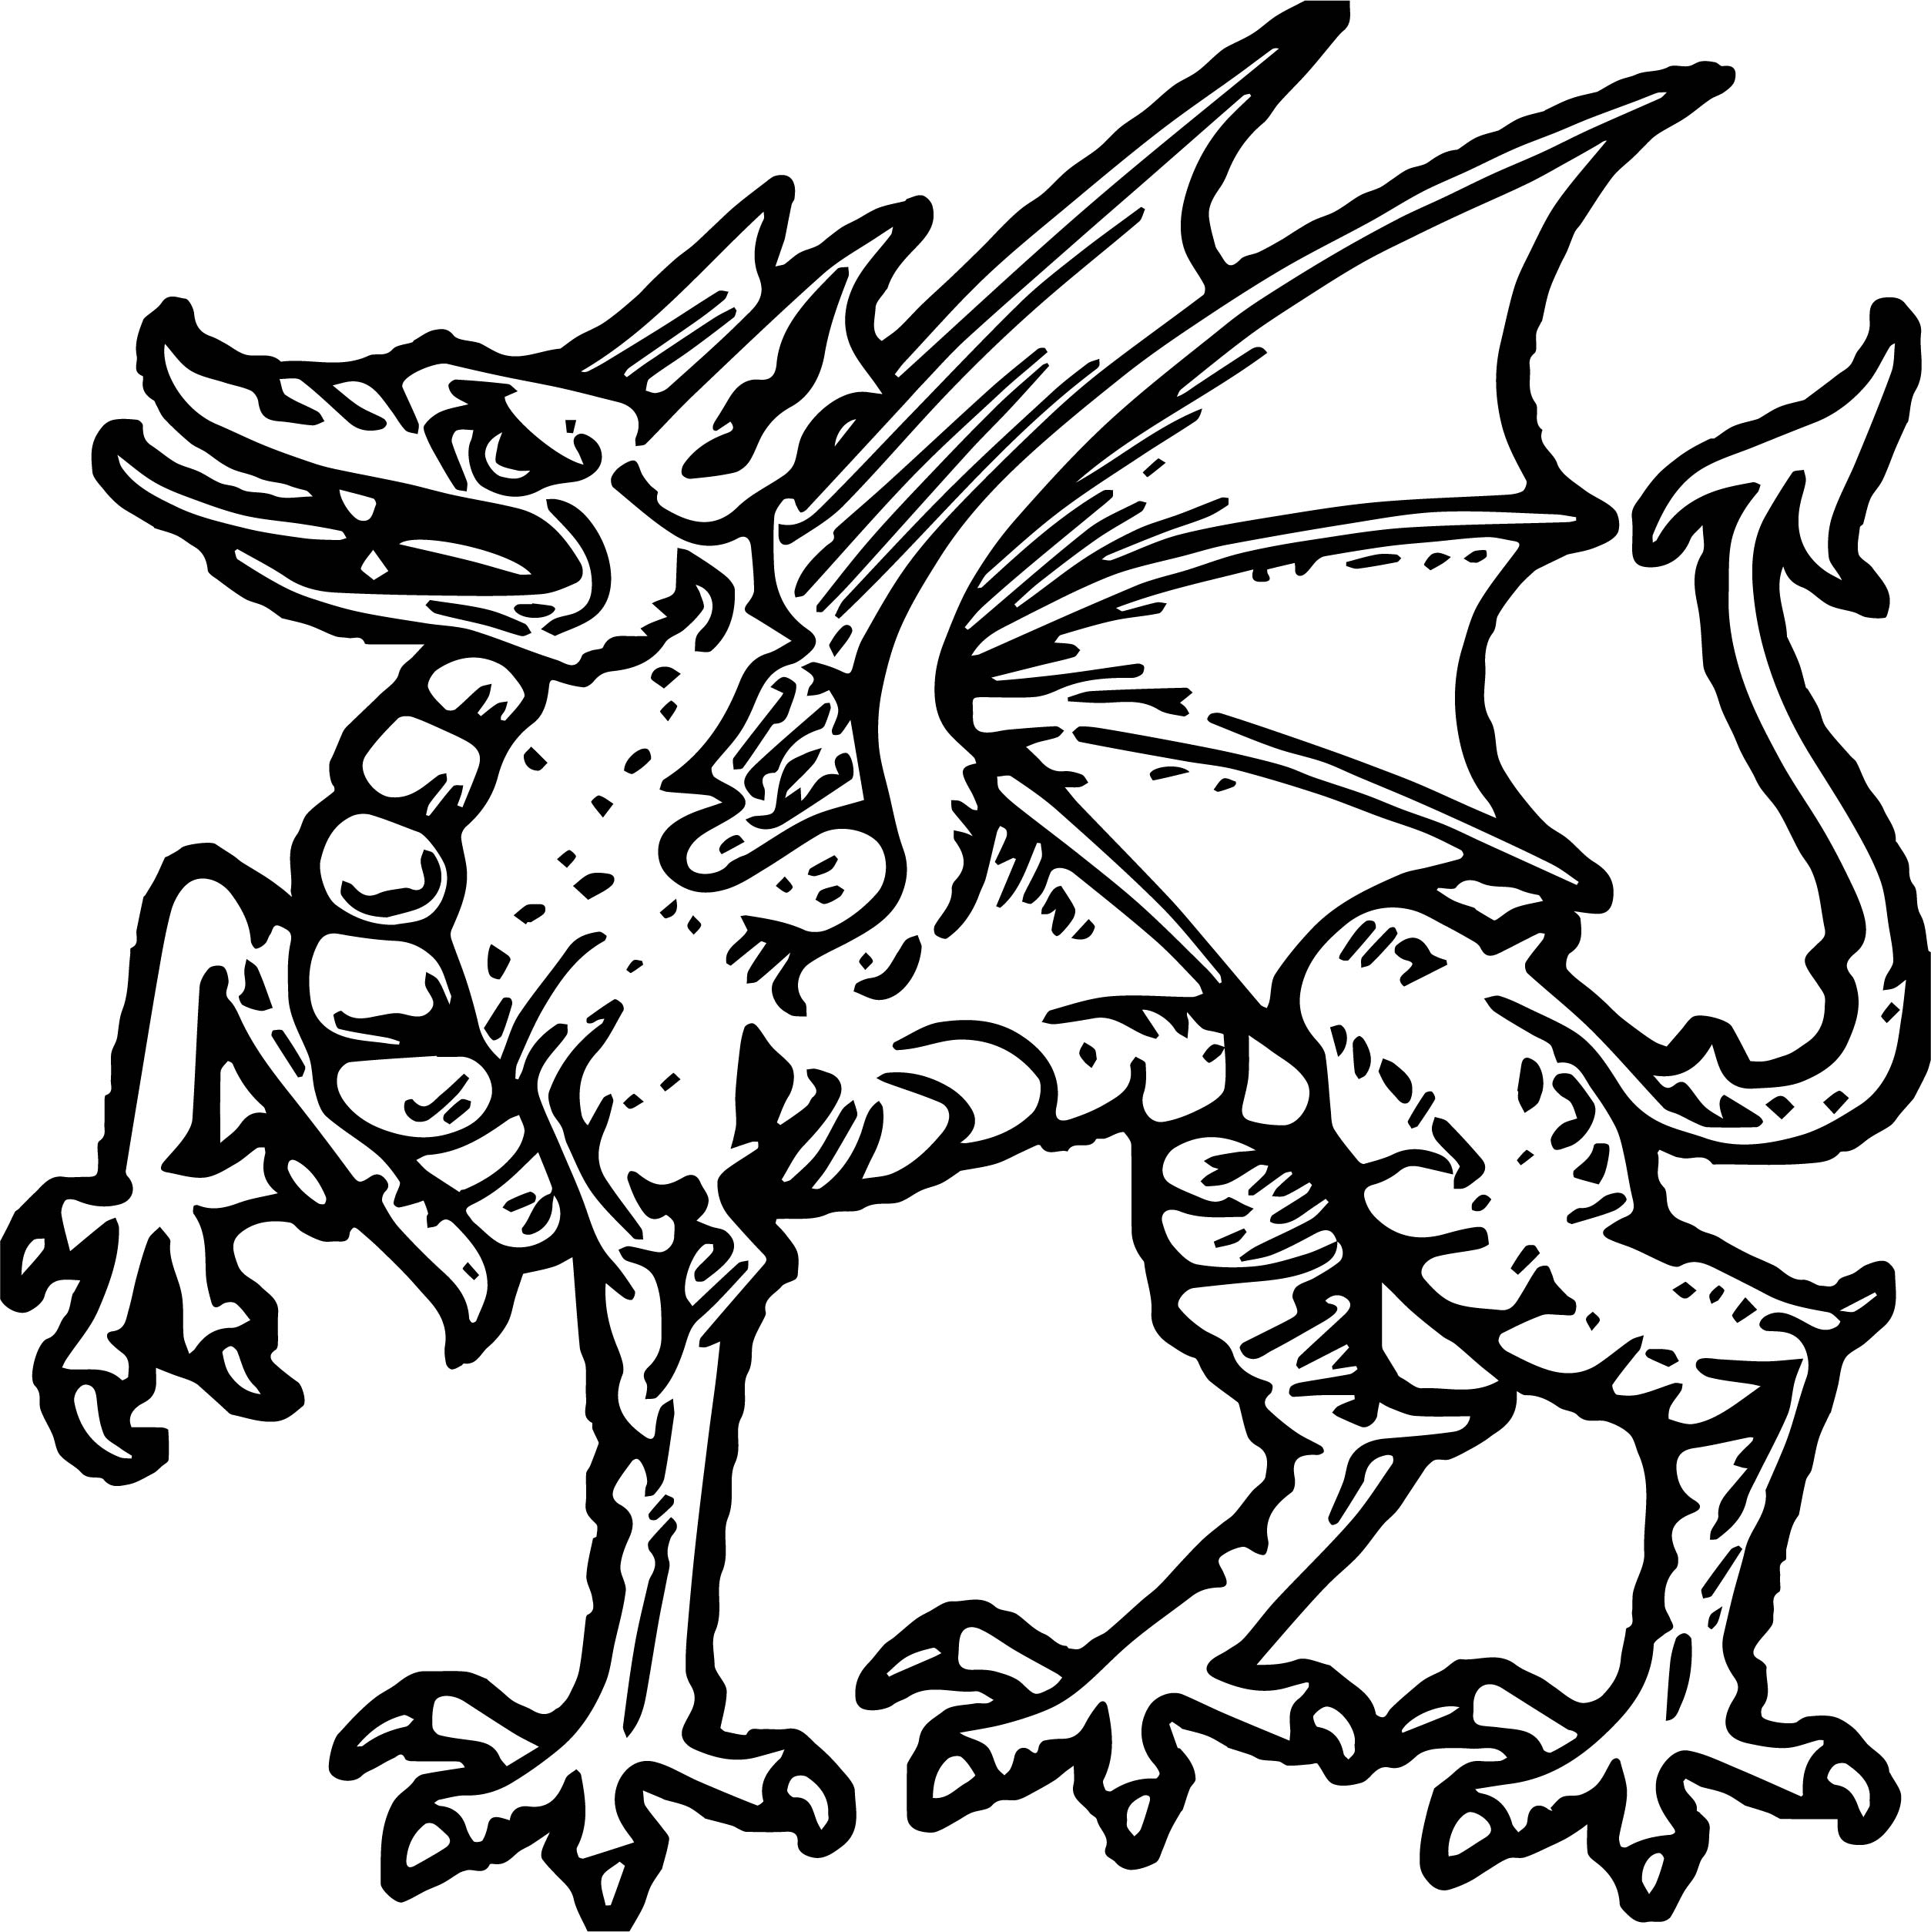 Dragon Figure Coloring Page